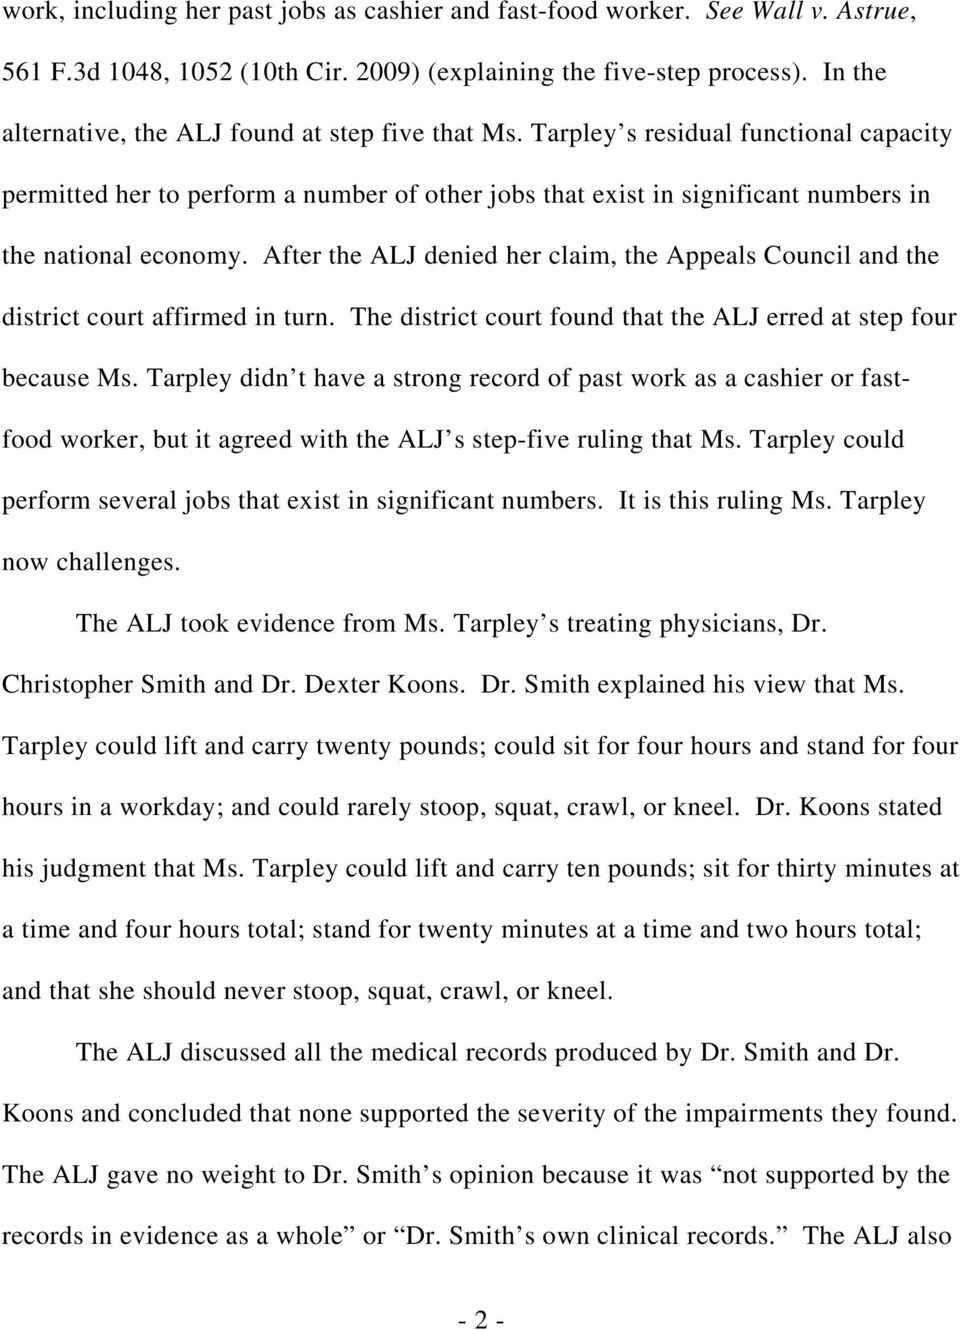 Tarpley s residual functional capacity permitted her to perform a number of other jobs that exist in significant numbers in the national economy.